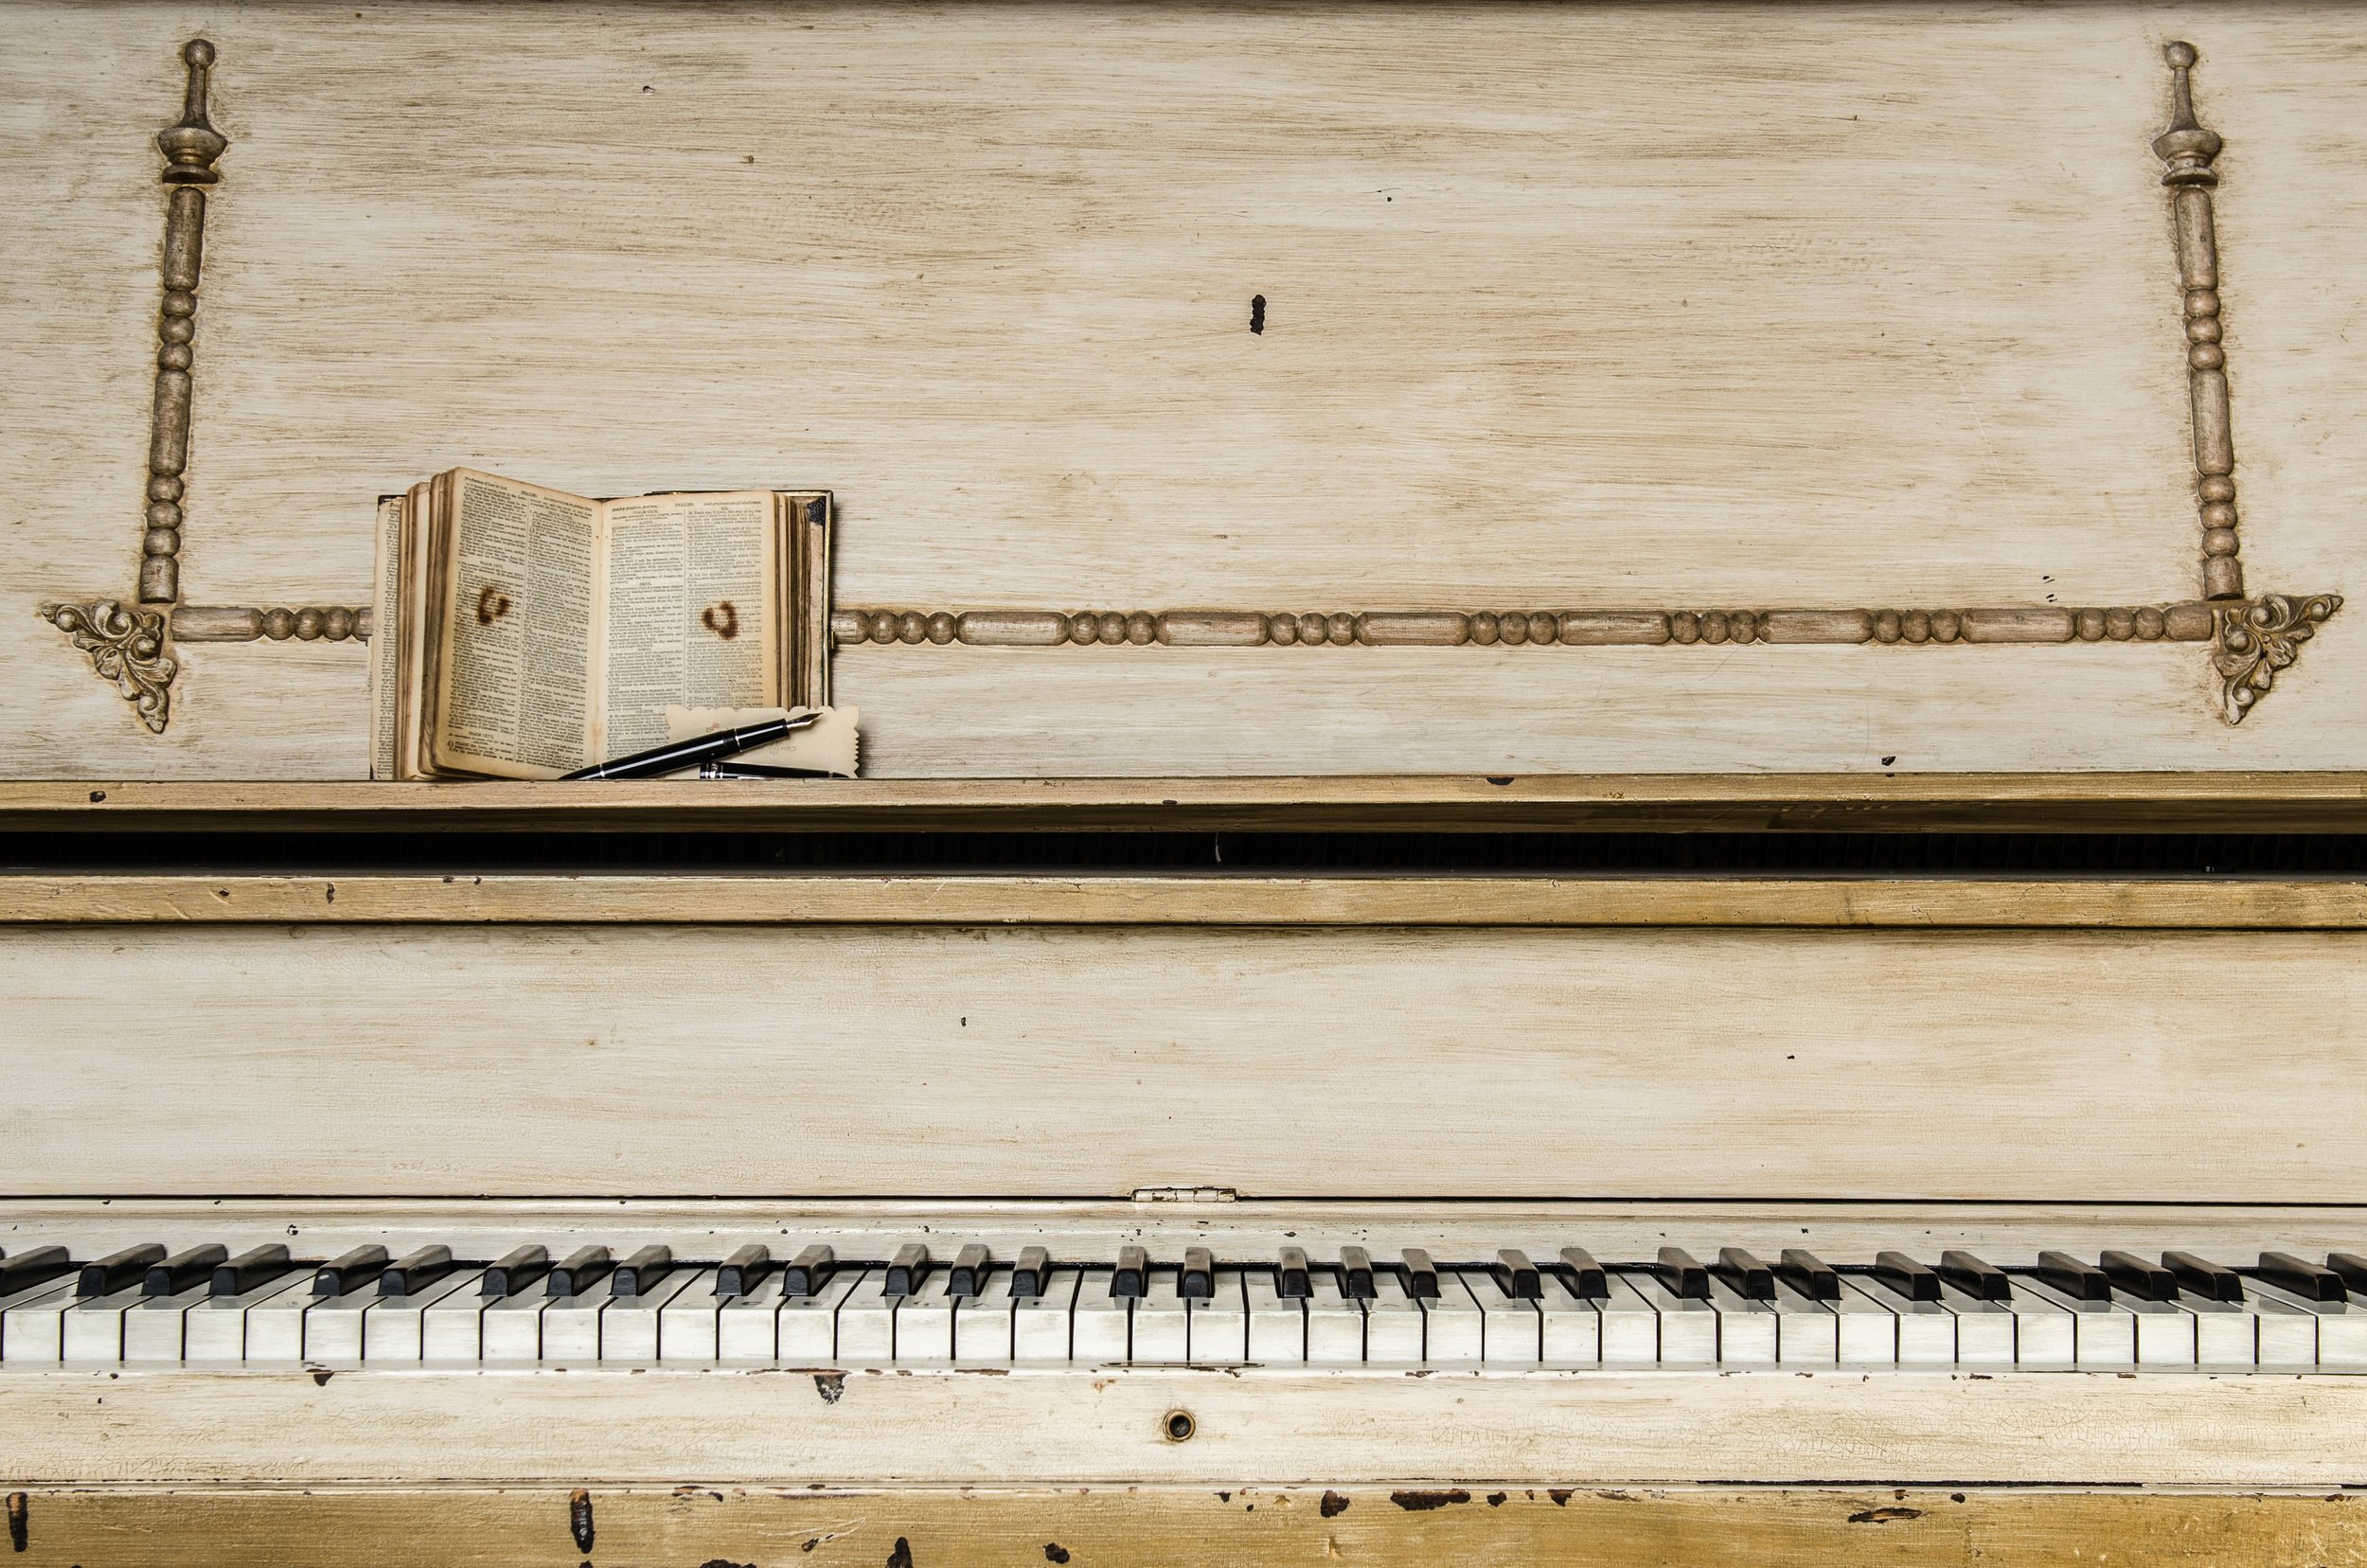 Music publishing - image of a piano with a songbook resting on it